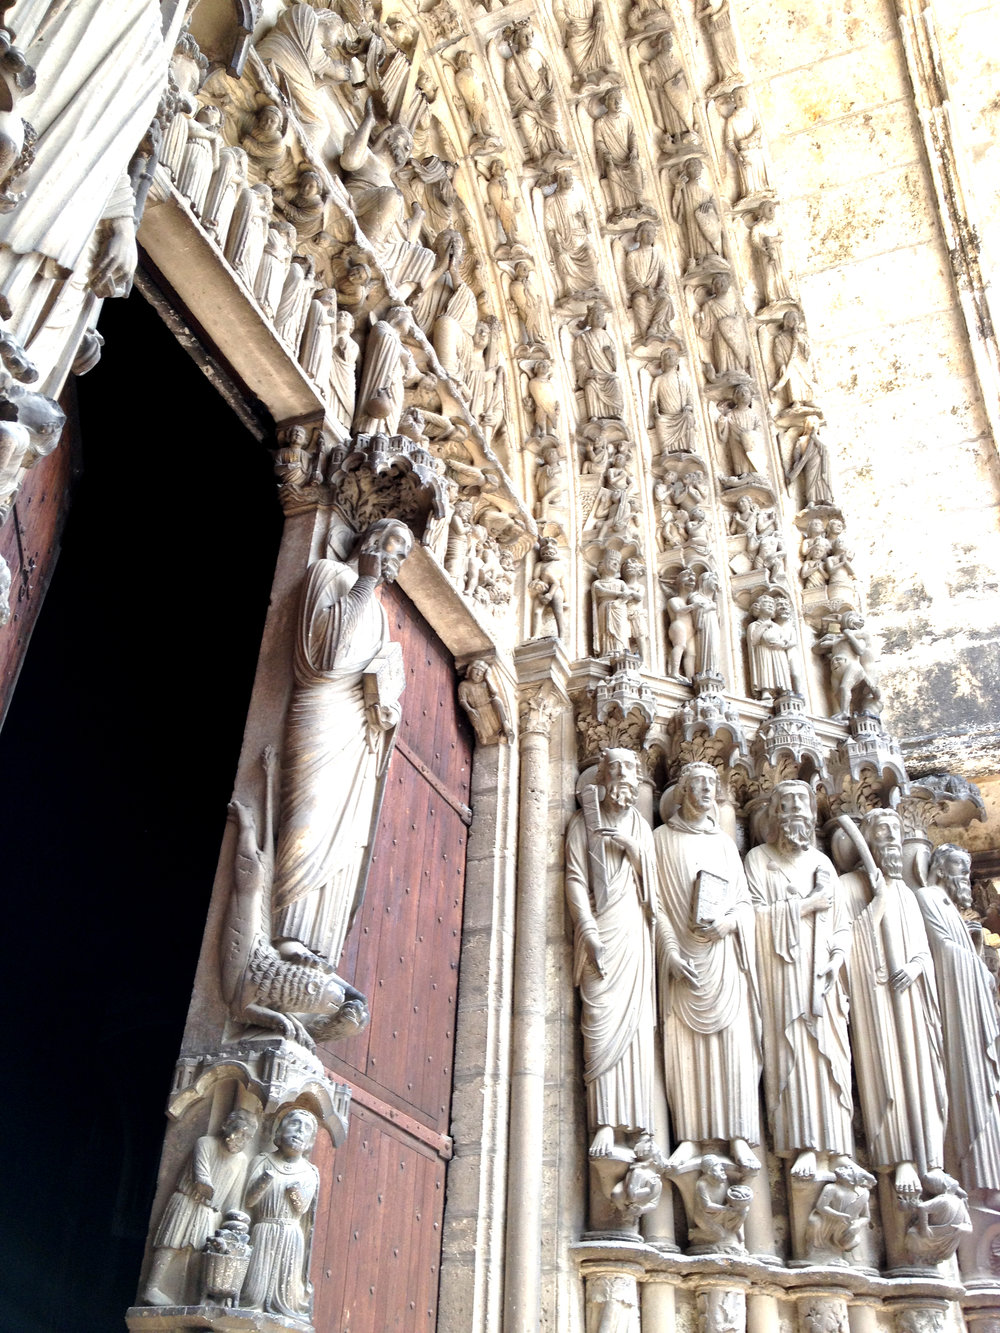 I'm always blown away at the sculptures on gothic cathedrals!